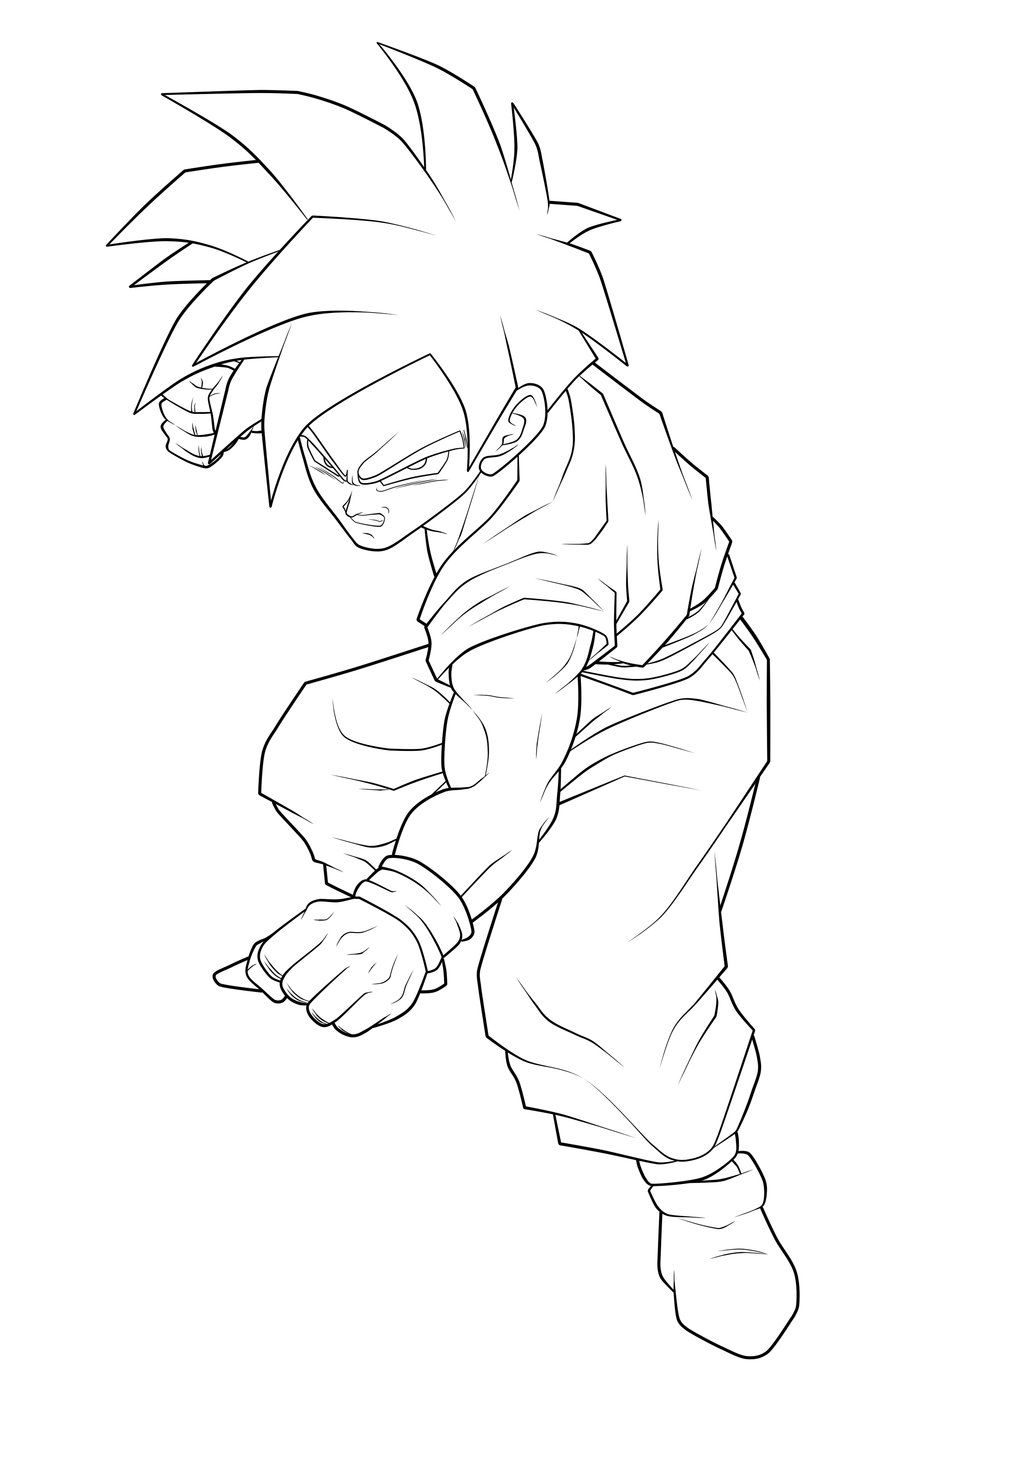 the dragon ball coloring pages called son gohan to coloring there we have the young gohan gokus son during his life gohan has changed a lot of dress